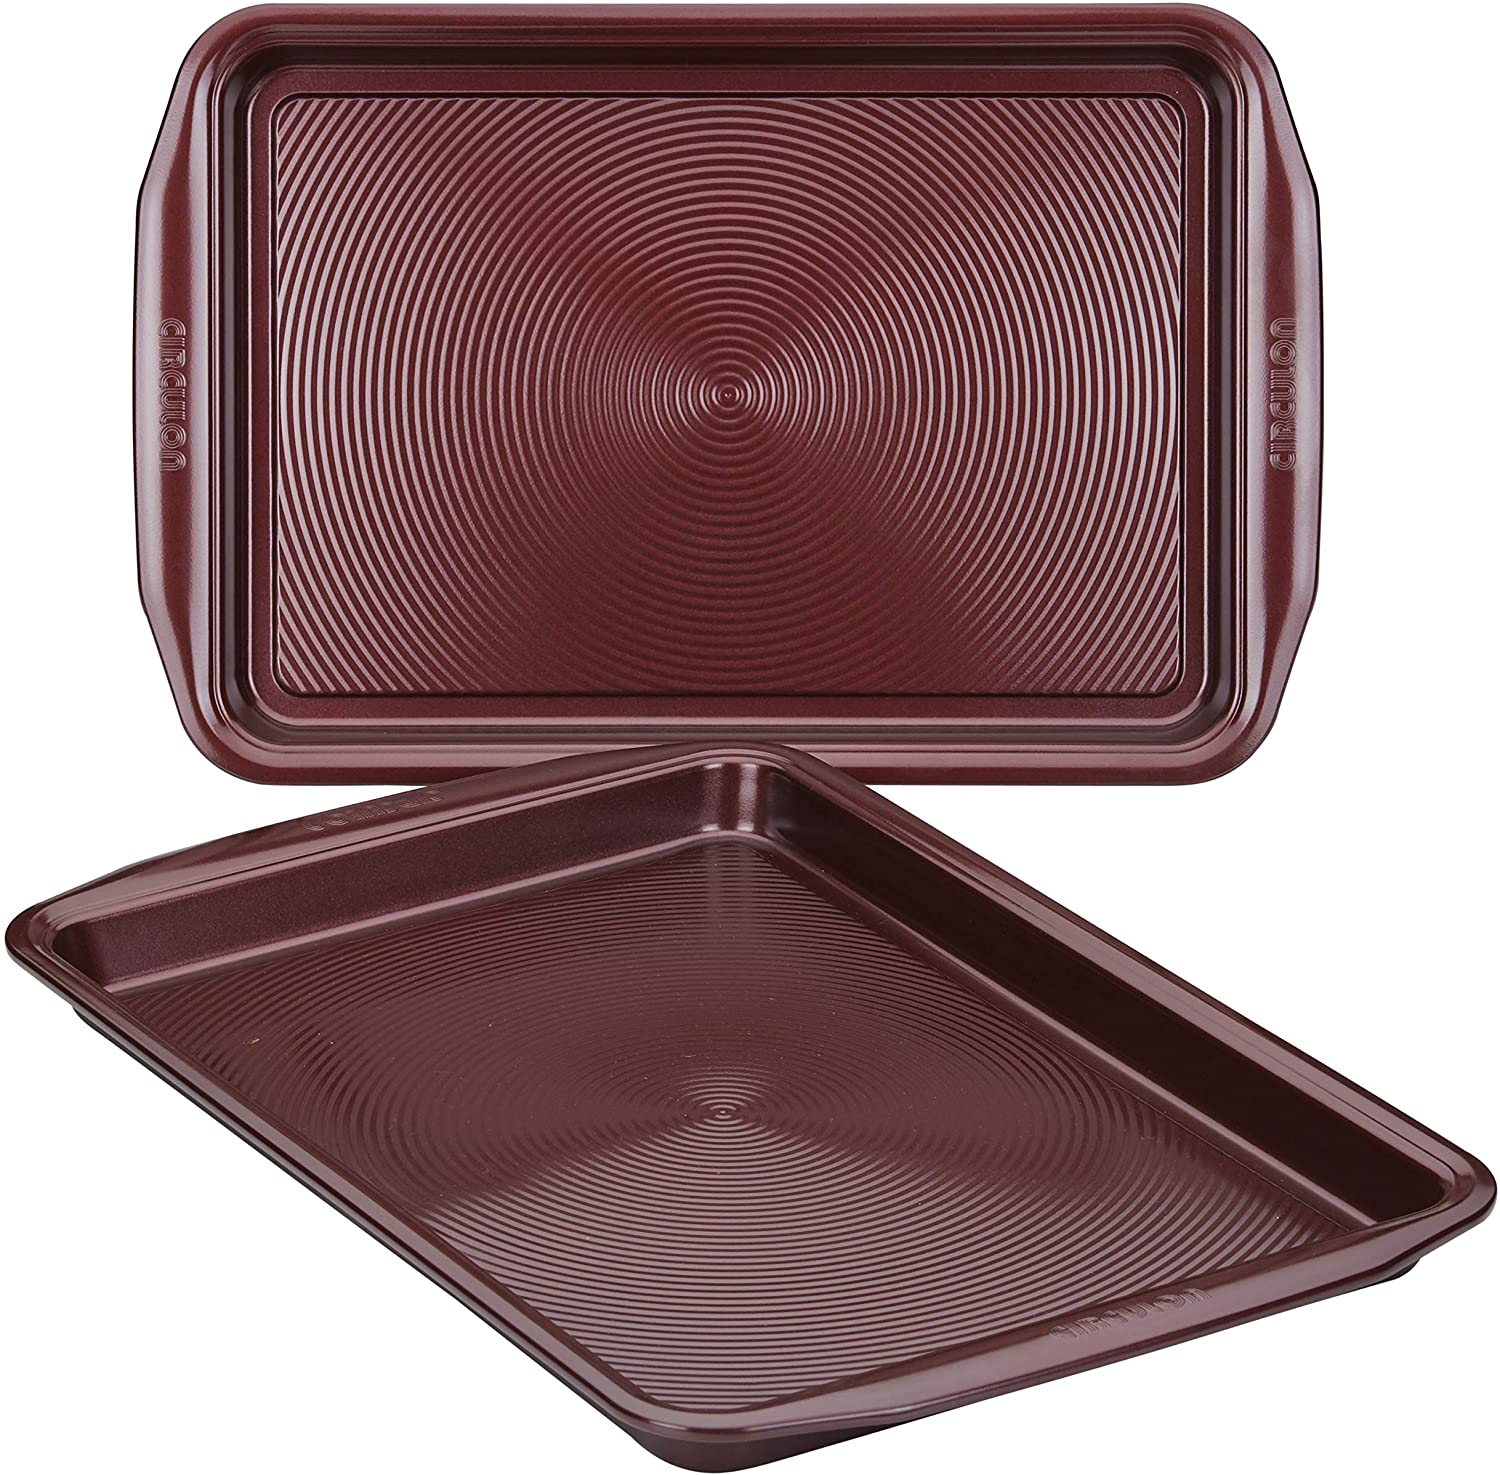 Circulon 47738 Nonstick Bakeware Set, Nonstick Cookie Sheets / Baking Sheets - 2 Piece, Merlot Red